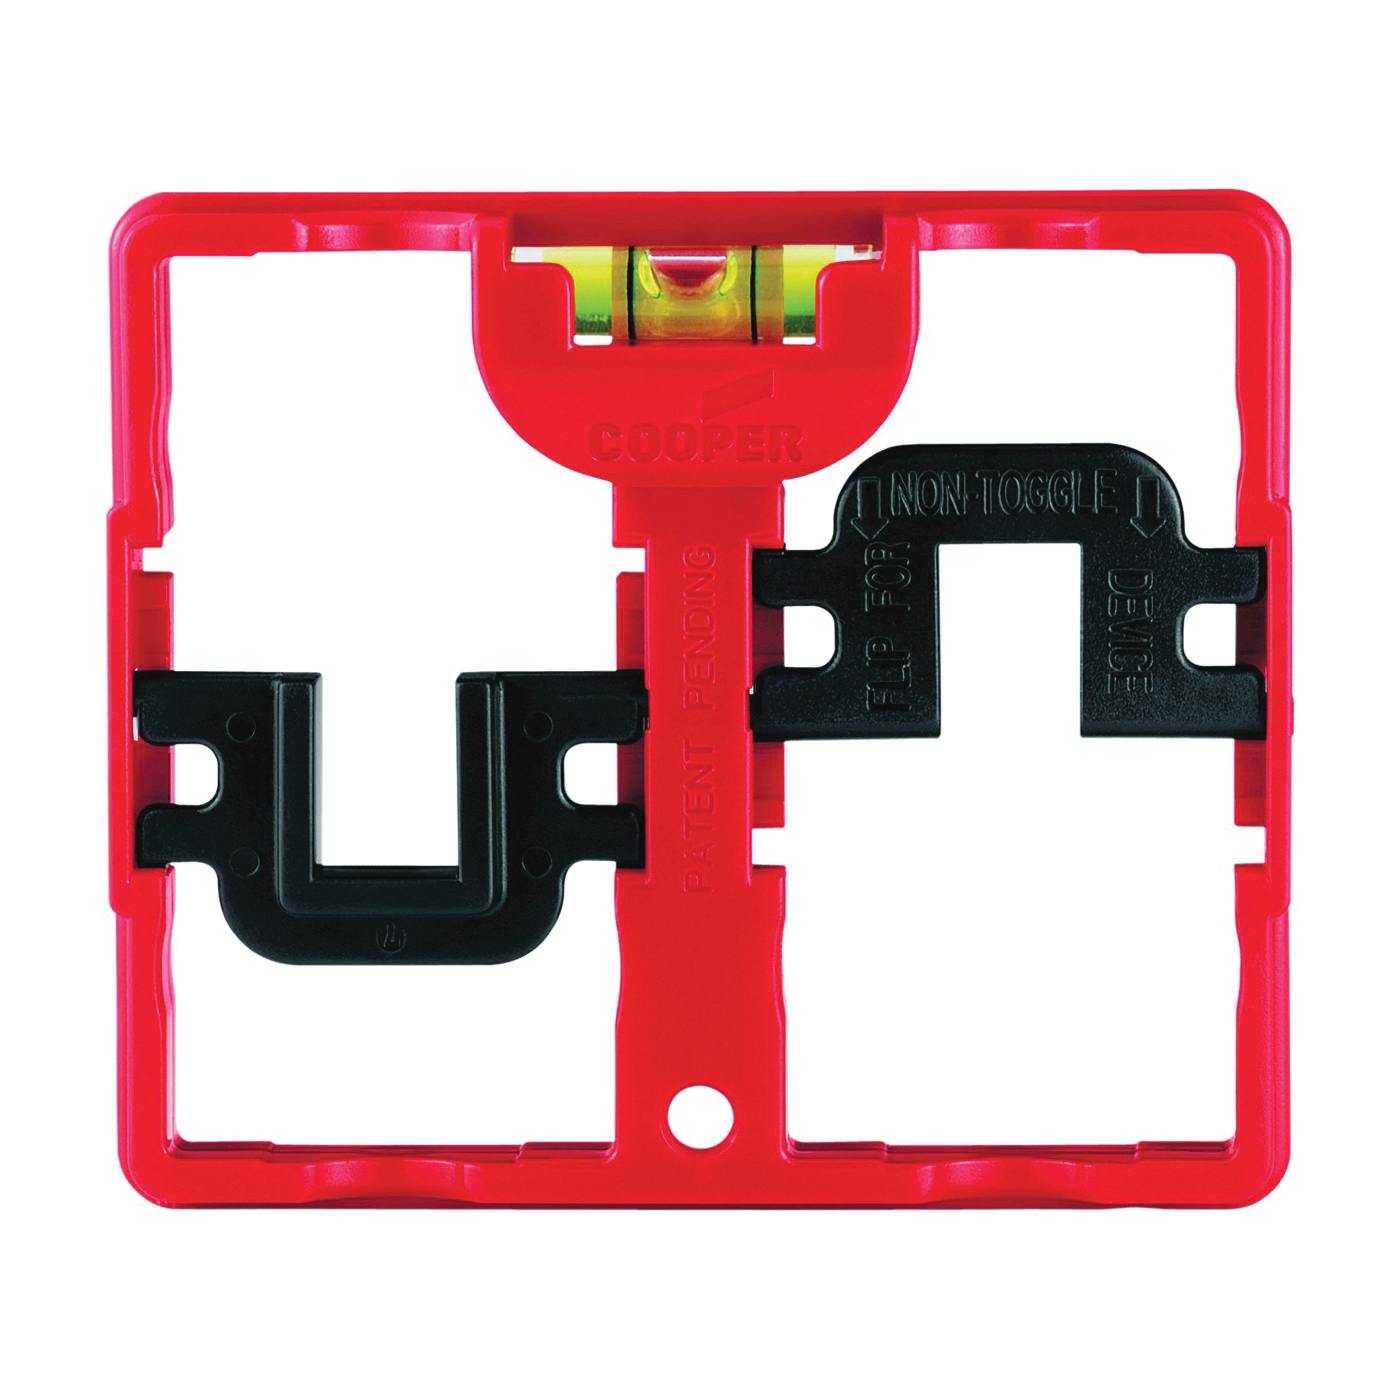 Picture of Eaton Wiring Devices G-TOOL-L Multi-Gang Installation Tool, Red